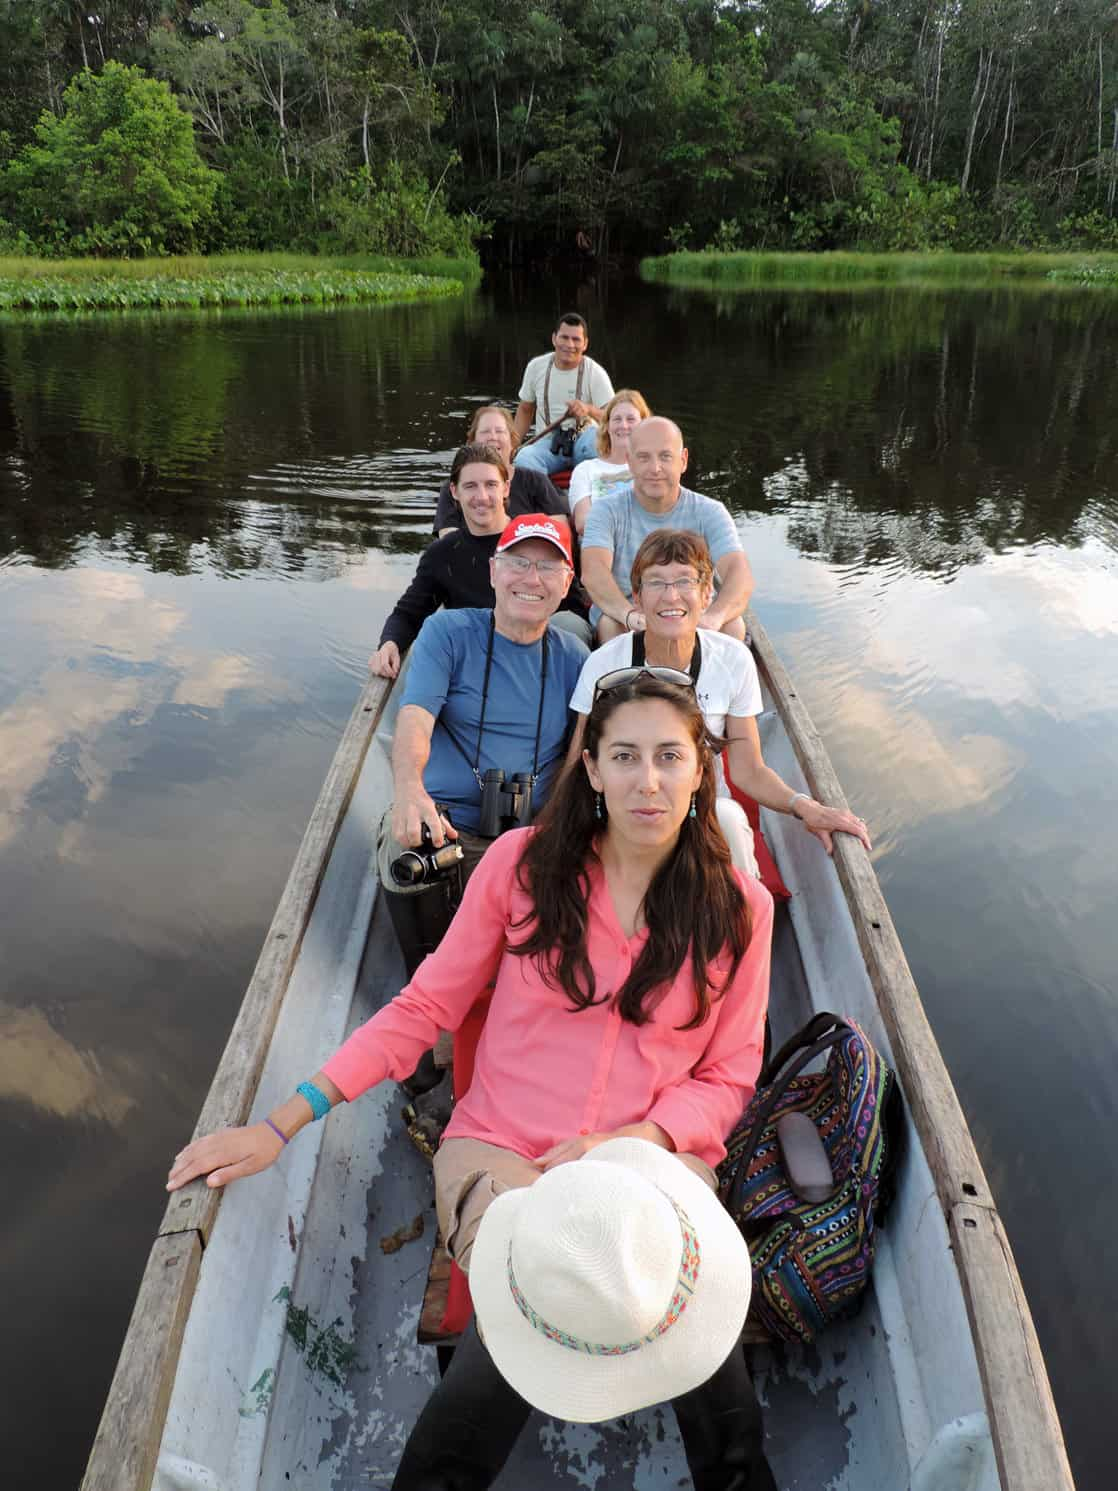 A group of Amazon travelers in a wooden canoe floating on a river in the Amazon.